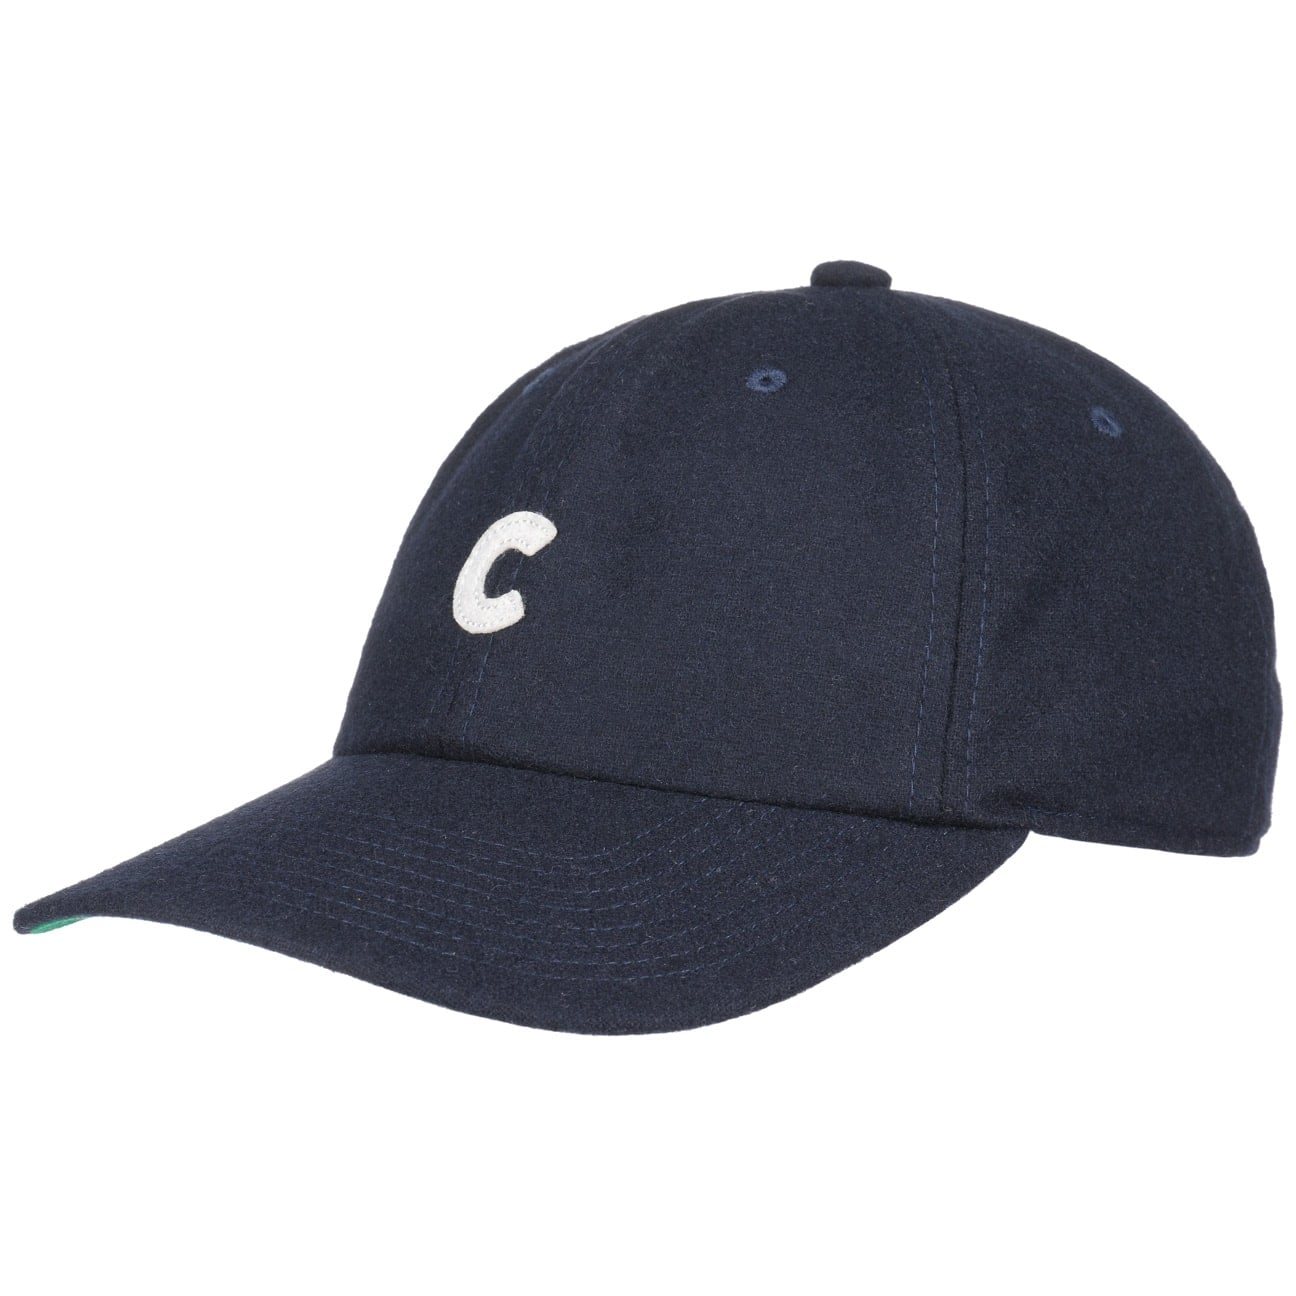 Gorra Basic C Strapback by Coal